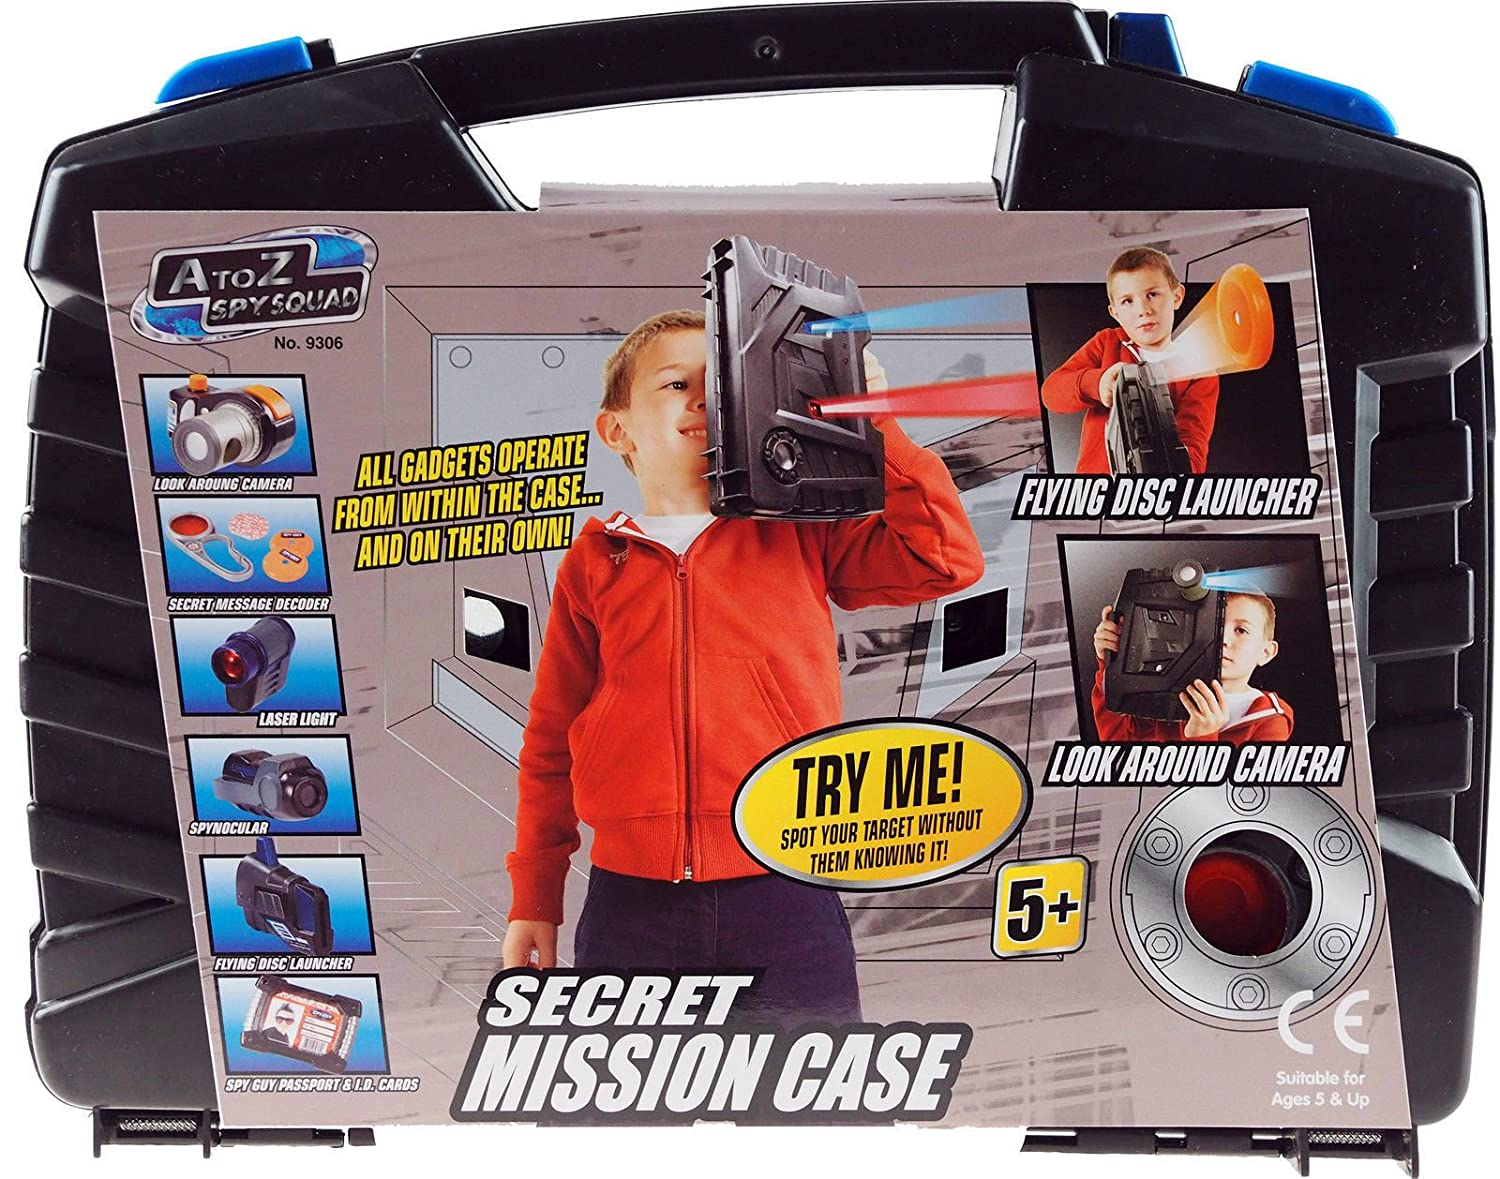 Secret Mission Spy Case - Contains 6 Spy Agent Toys And Gadgets! by A TO Z